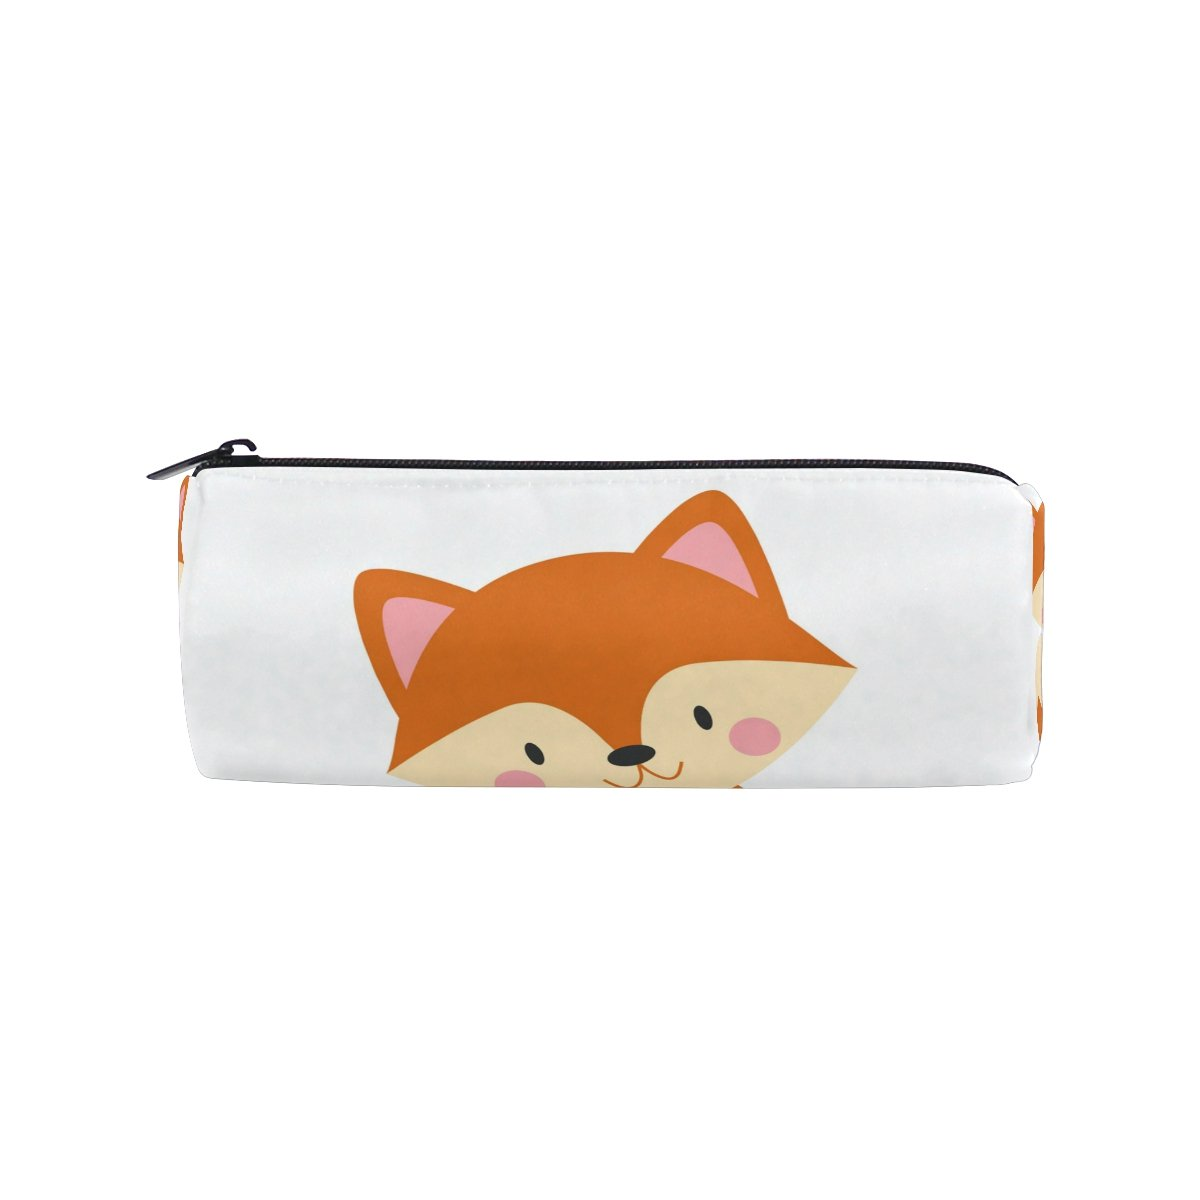 Cooper Girl Cute Fox Pencil Bag Pen Case Students Stationery Pouch Zipper Bag for Girls Boys Kids